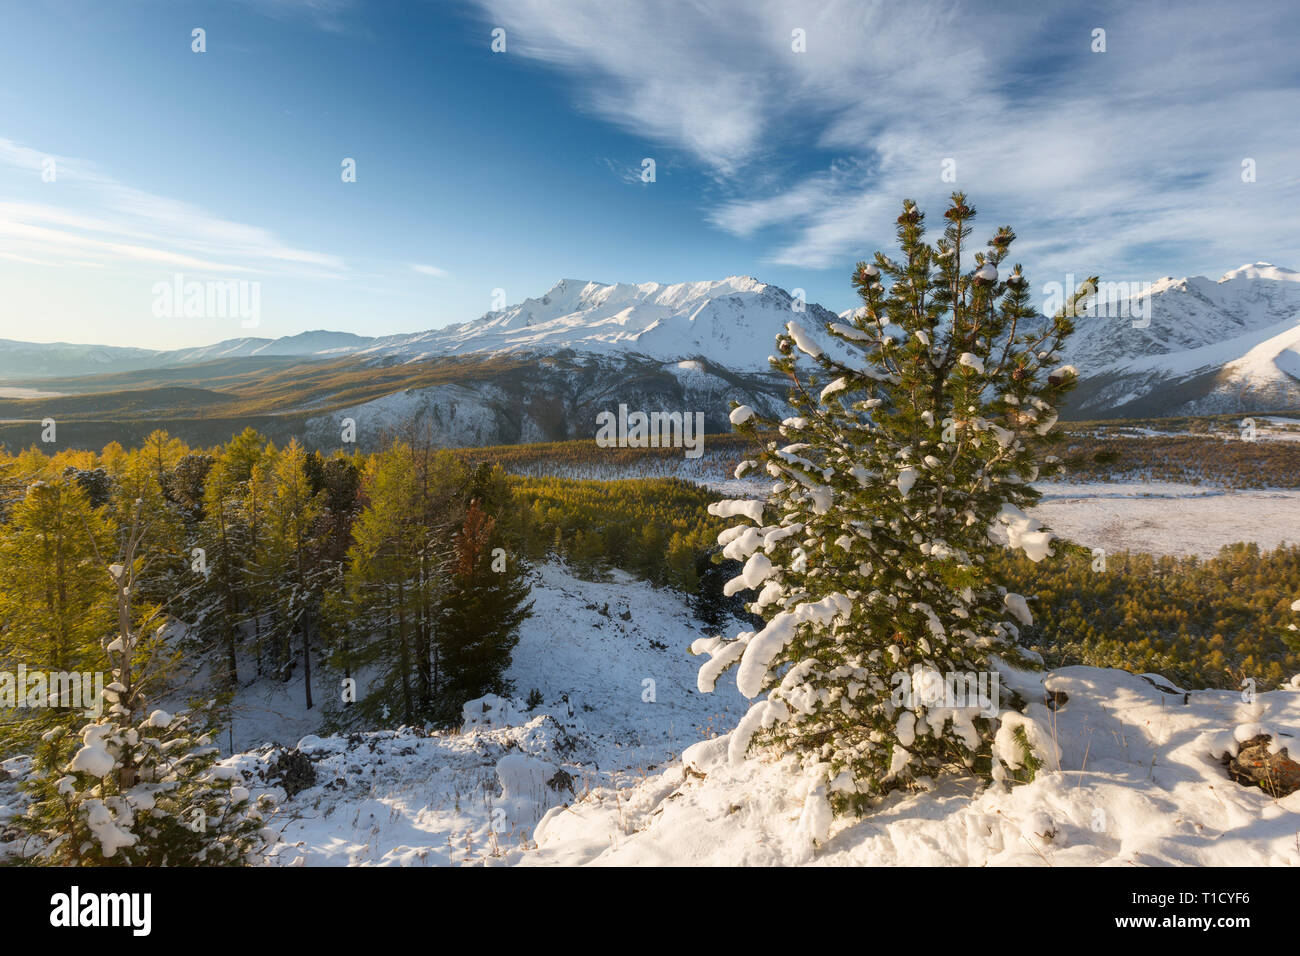 Majestic white spruces glowing by sunlight. Picturesque and gorgeous wintry scene. Alps ski resort. - Stock Image